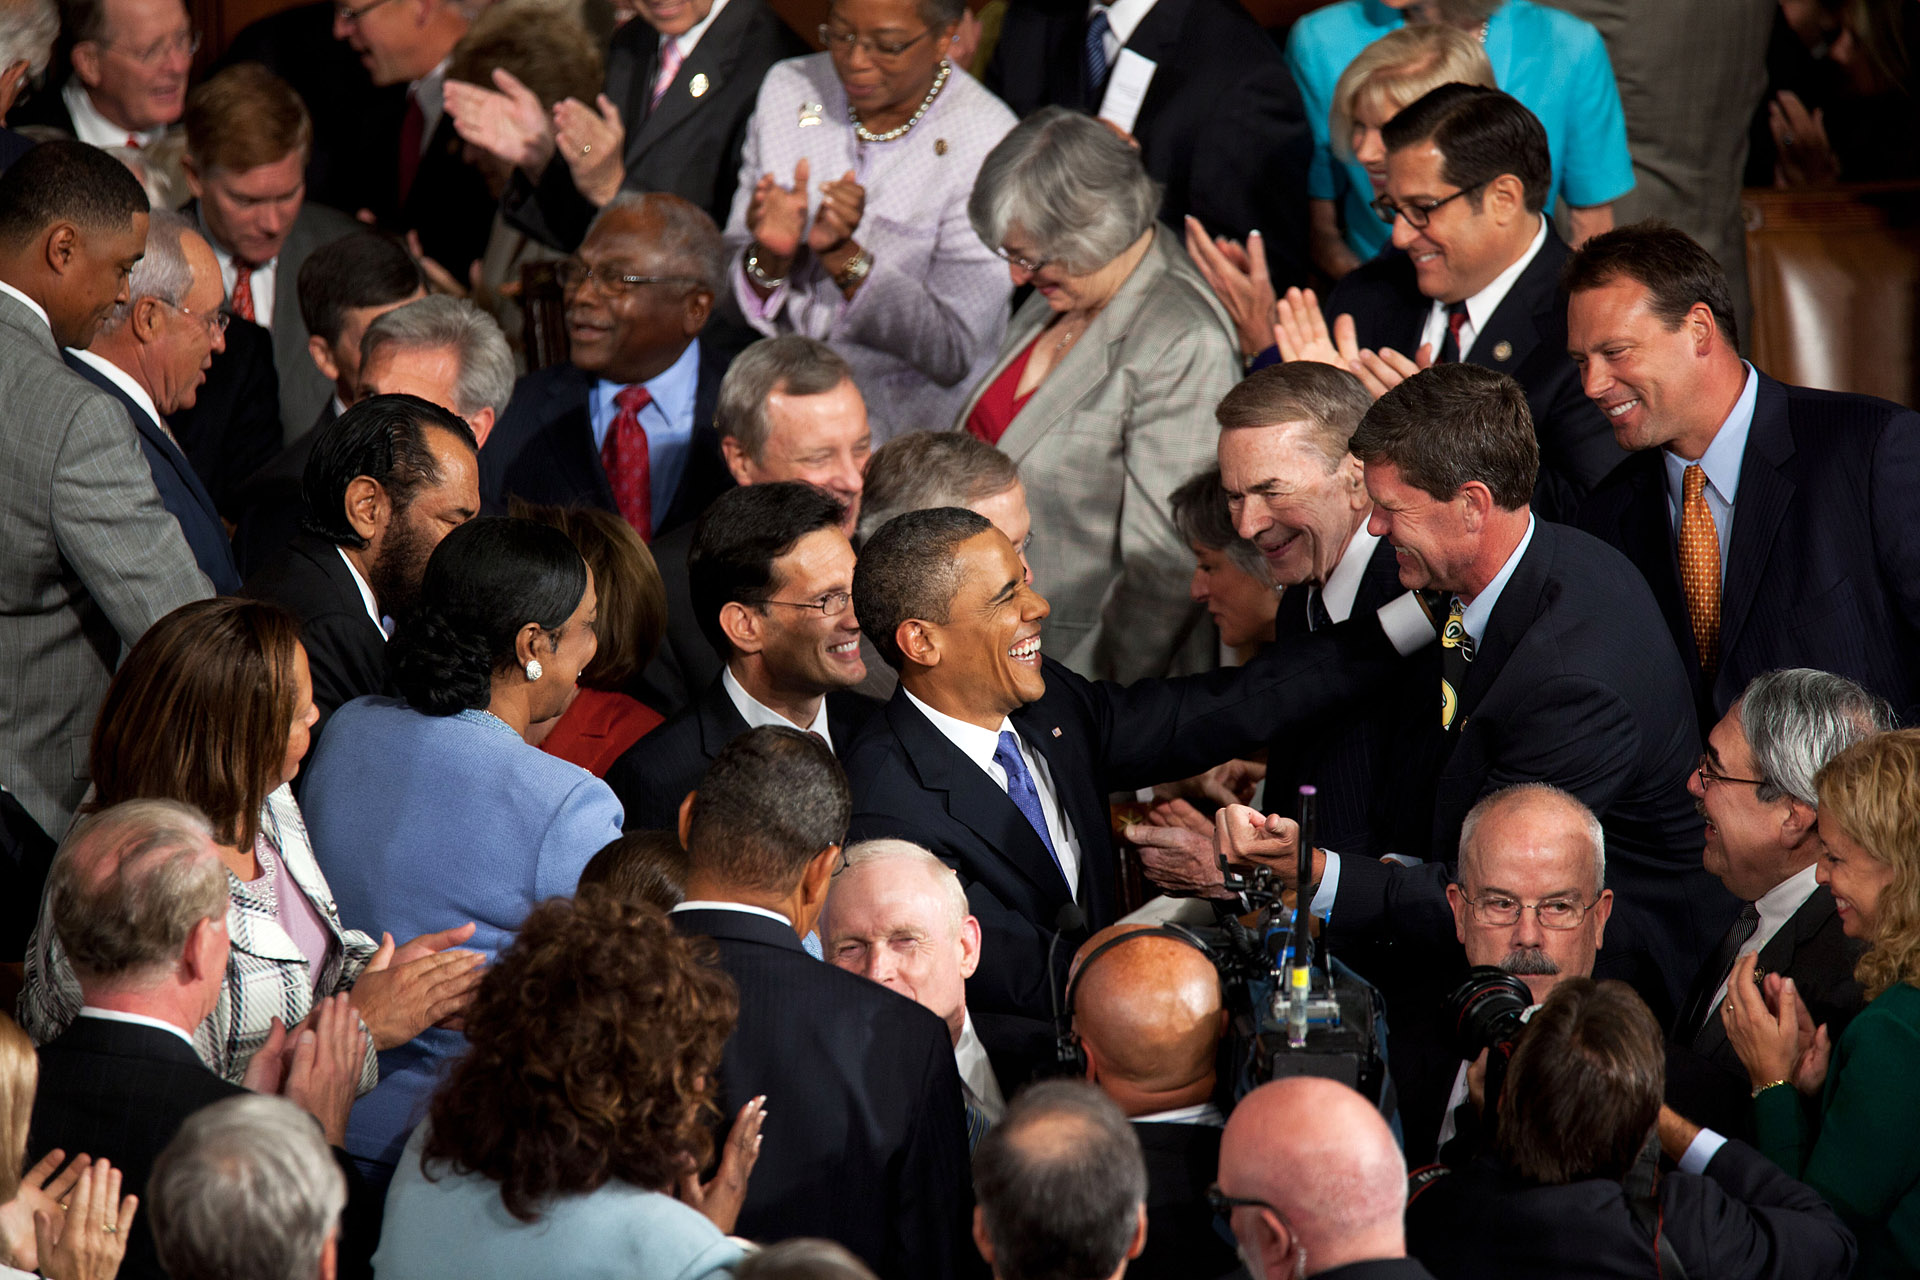 President Barack Obama Shakes Hands With Members Of Congress